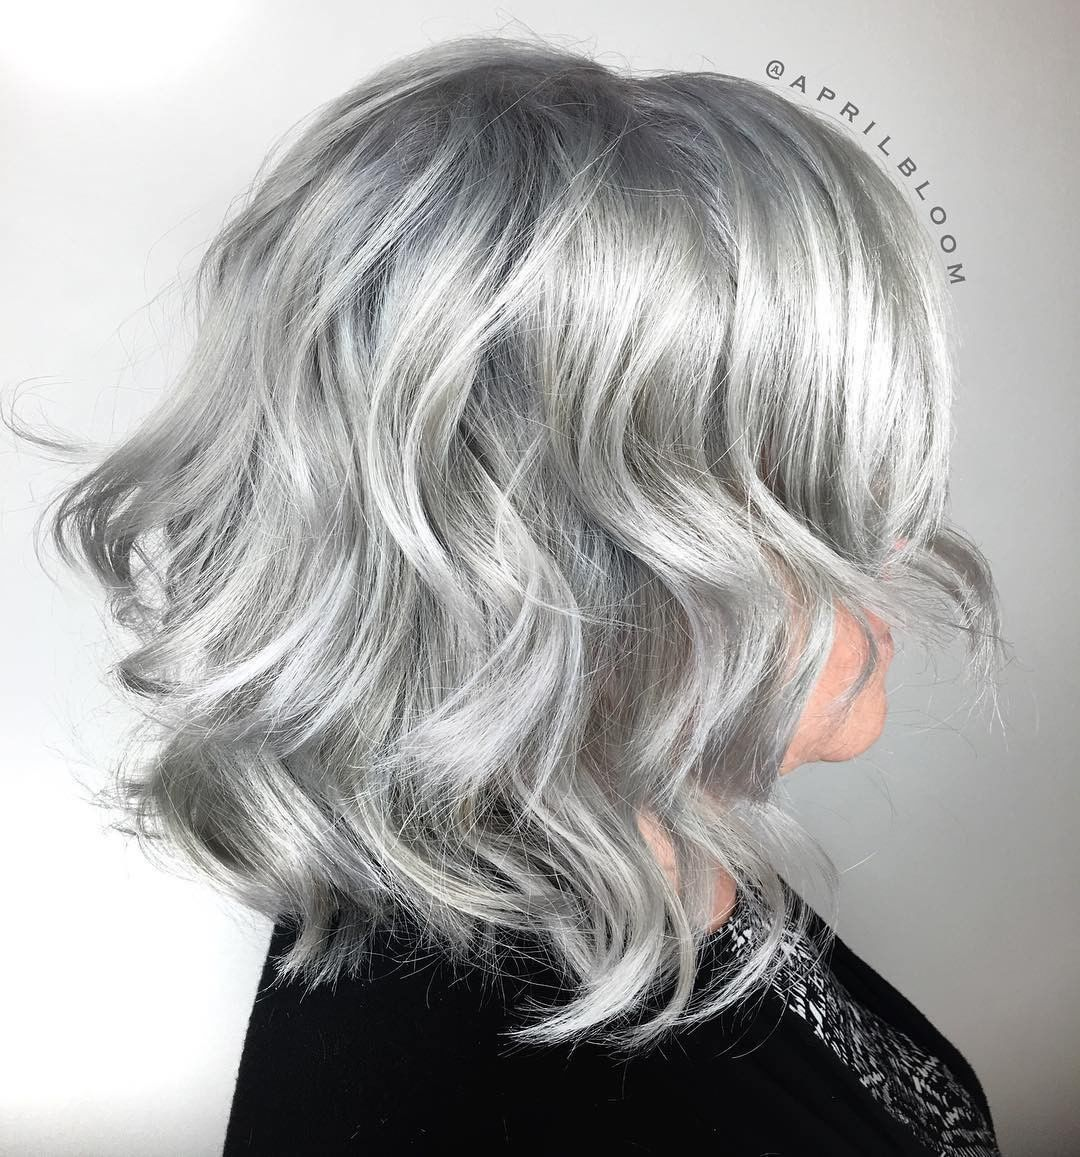 aprilbloom - ice cold silver | hairstyles & makeup | pinterest